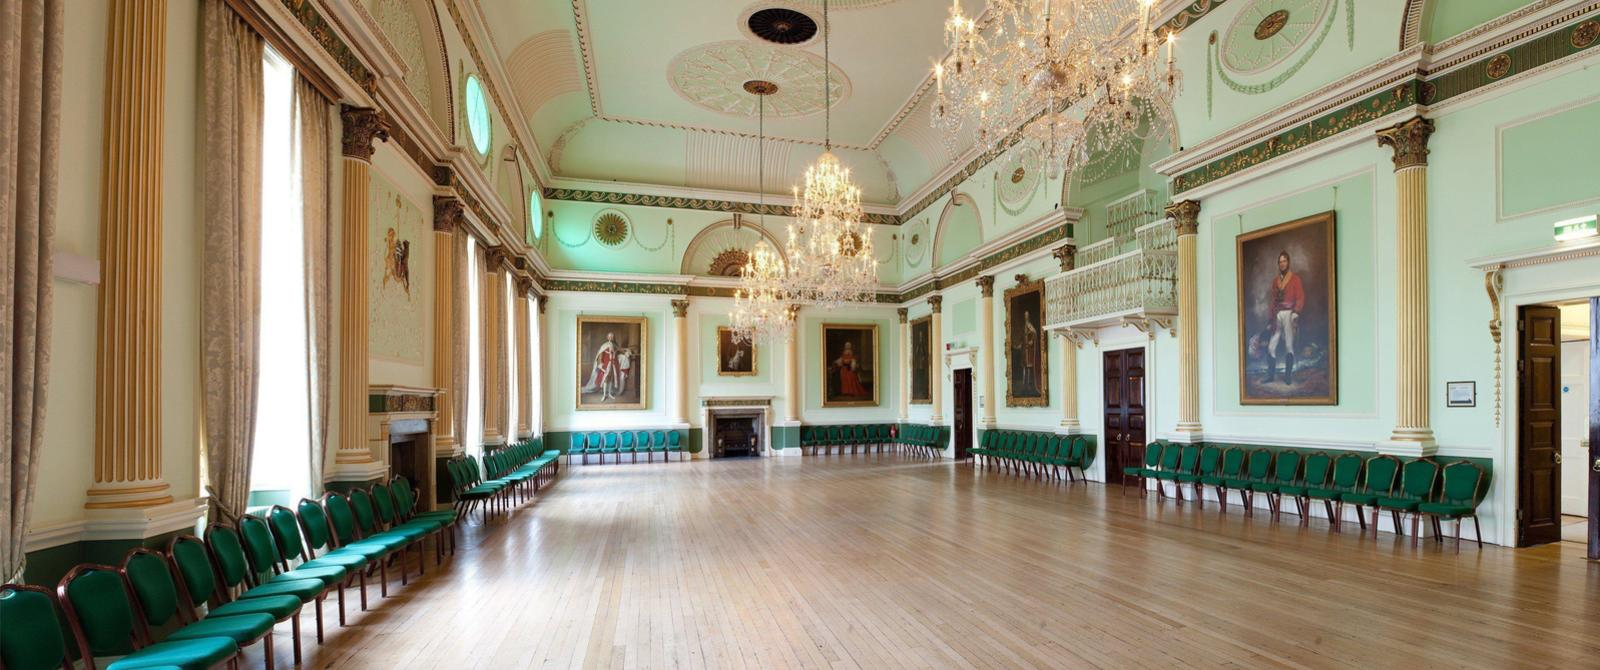 image: Guildhall Banqueting Room